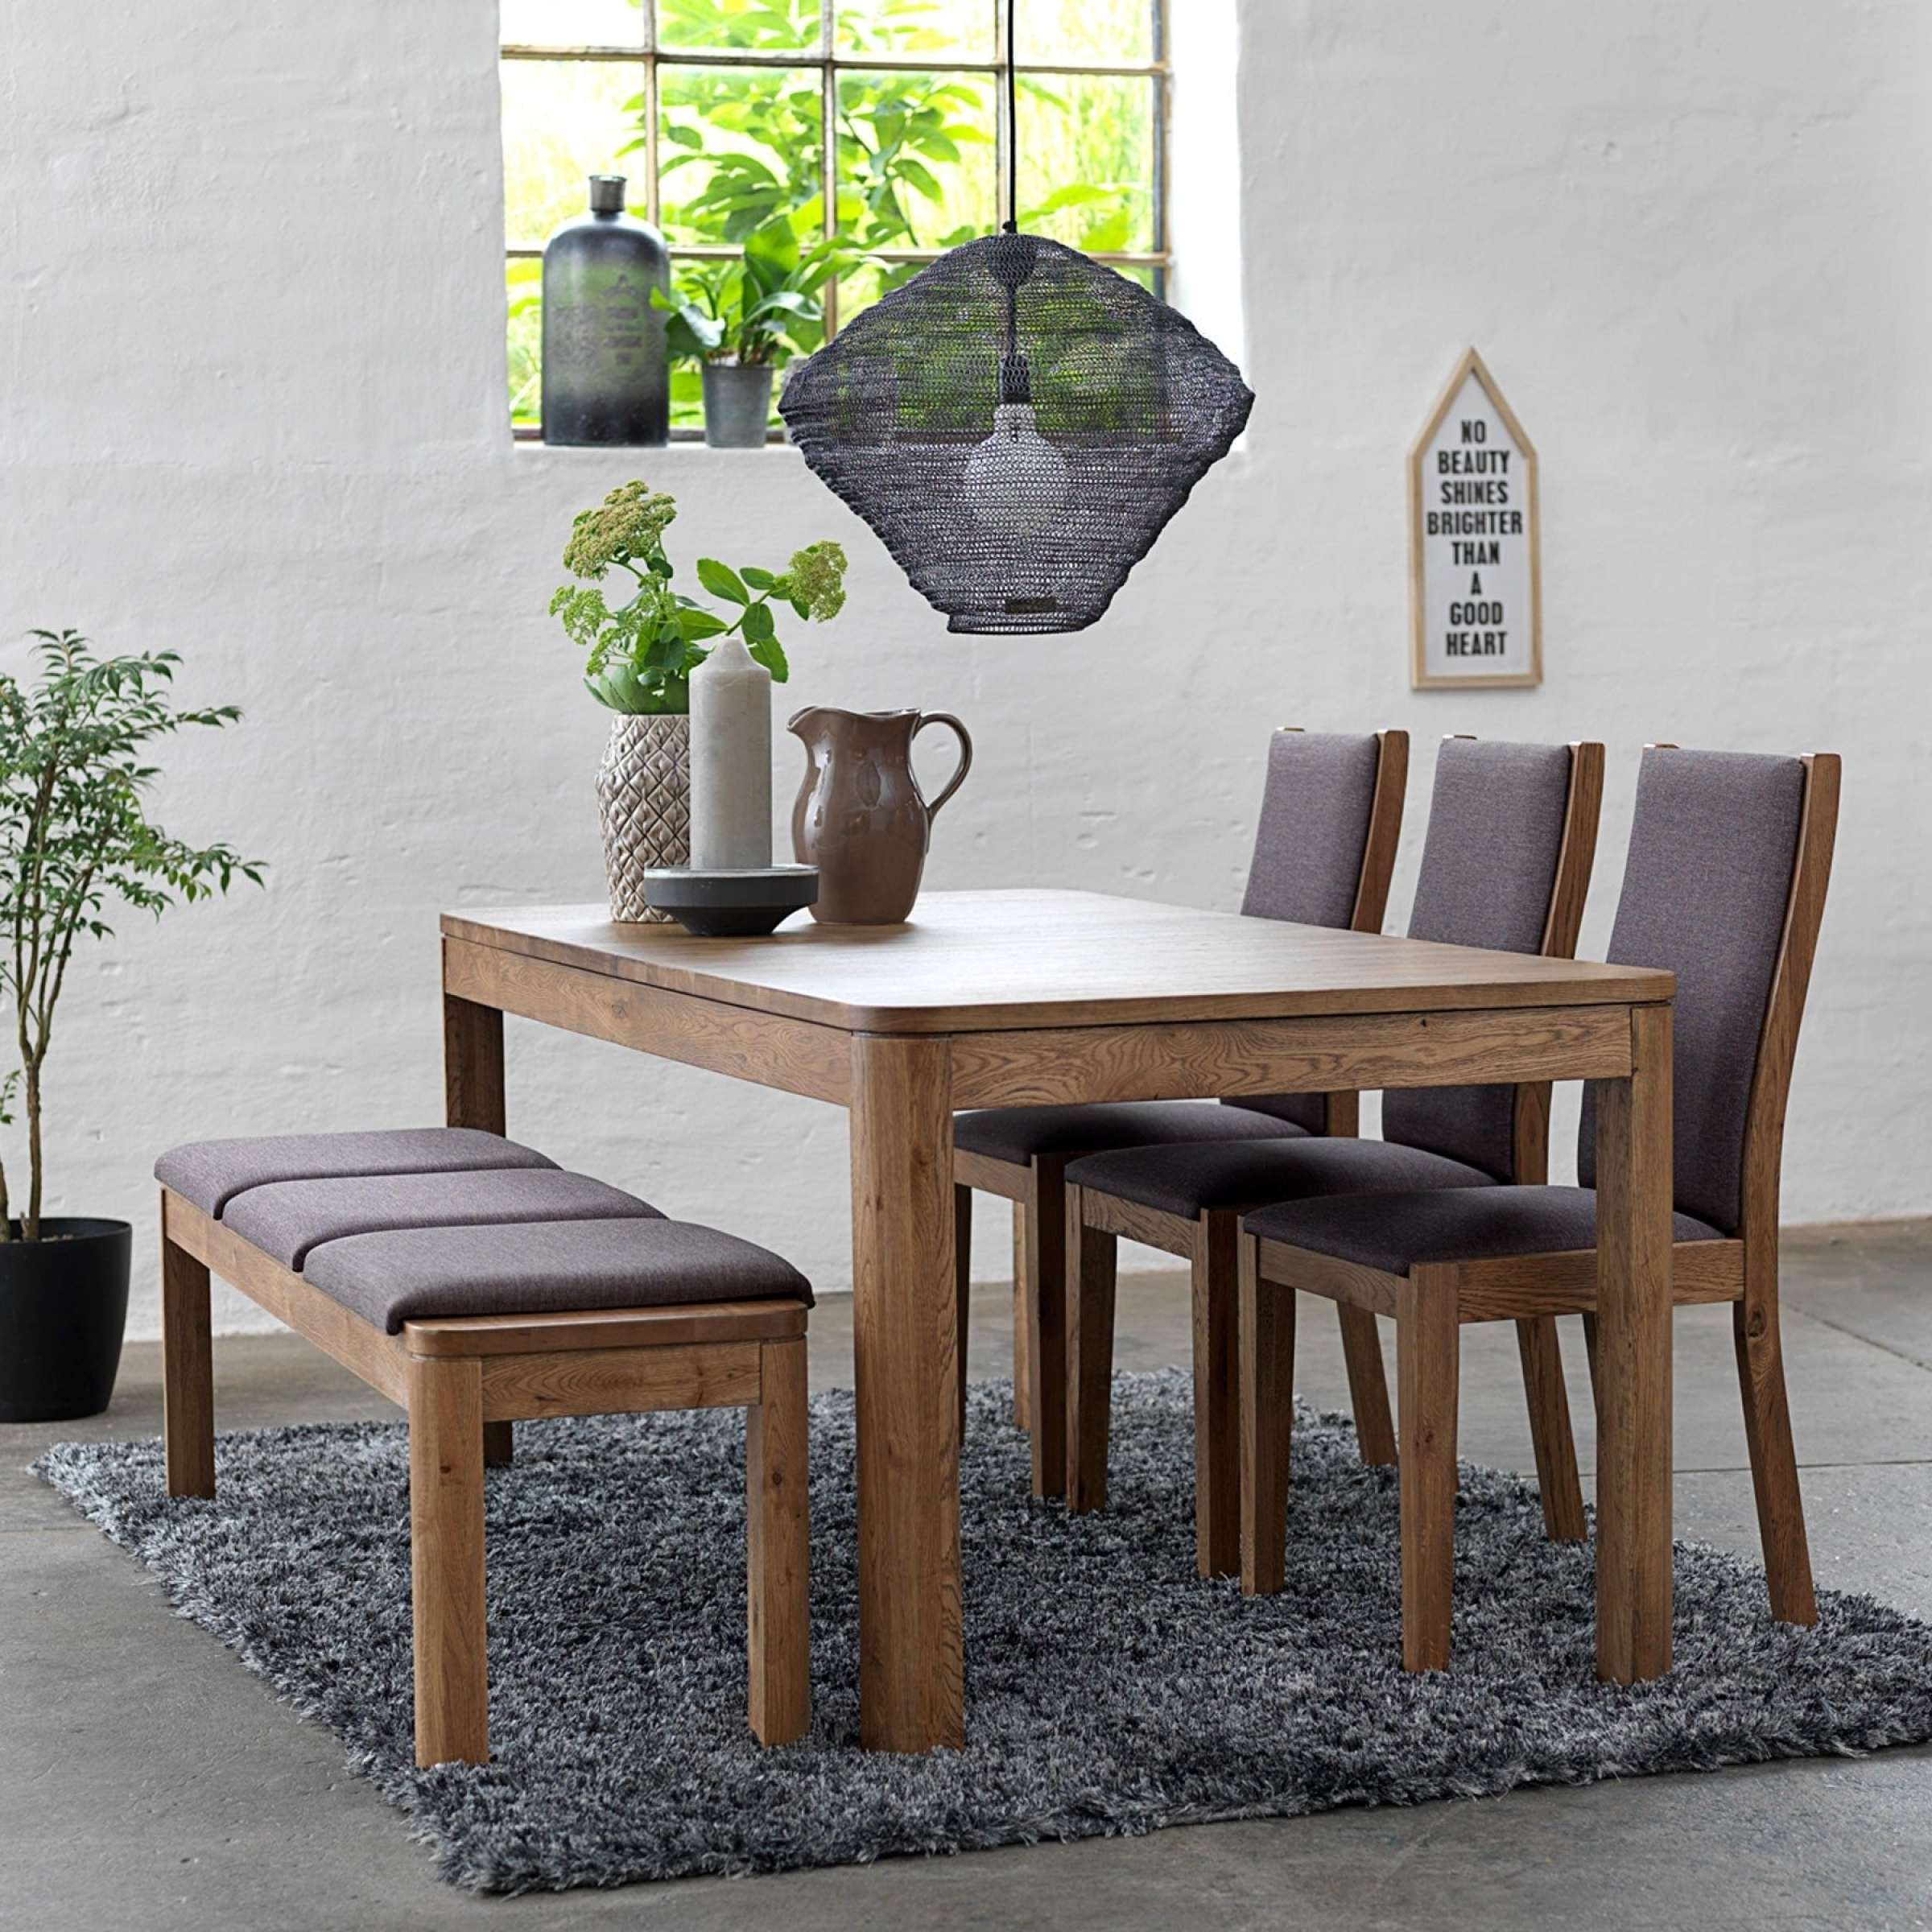 Torsby Oak Dining Table With 3 Chairs, Bench And Seat